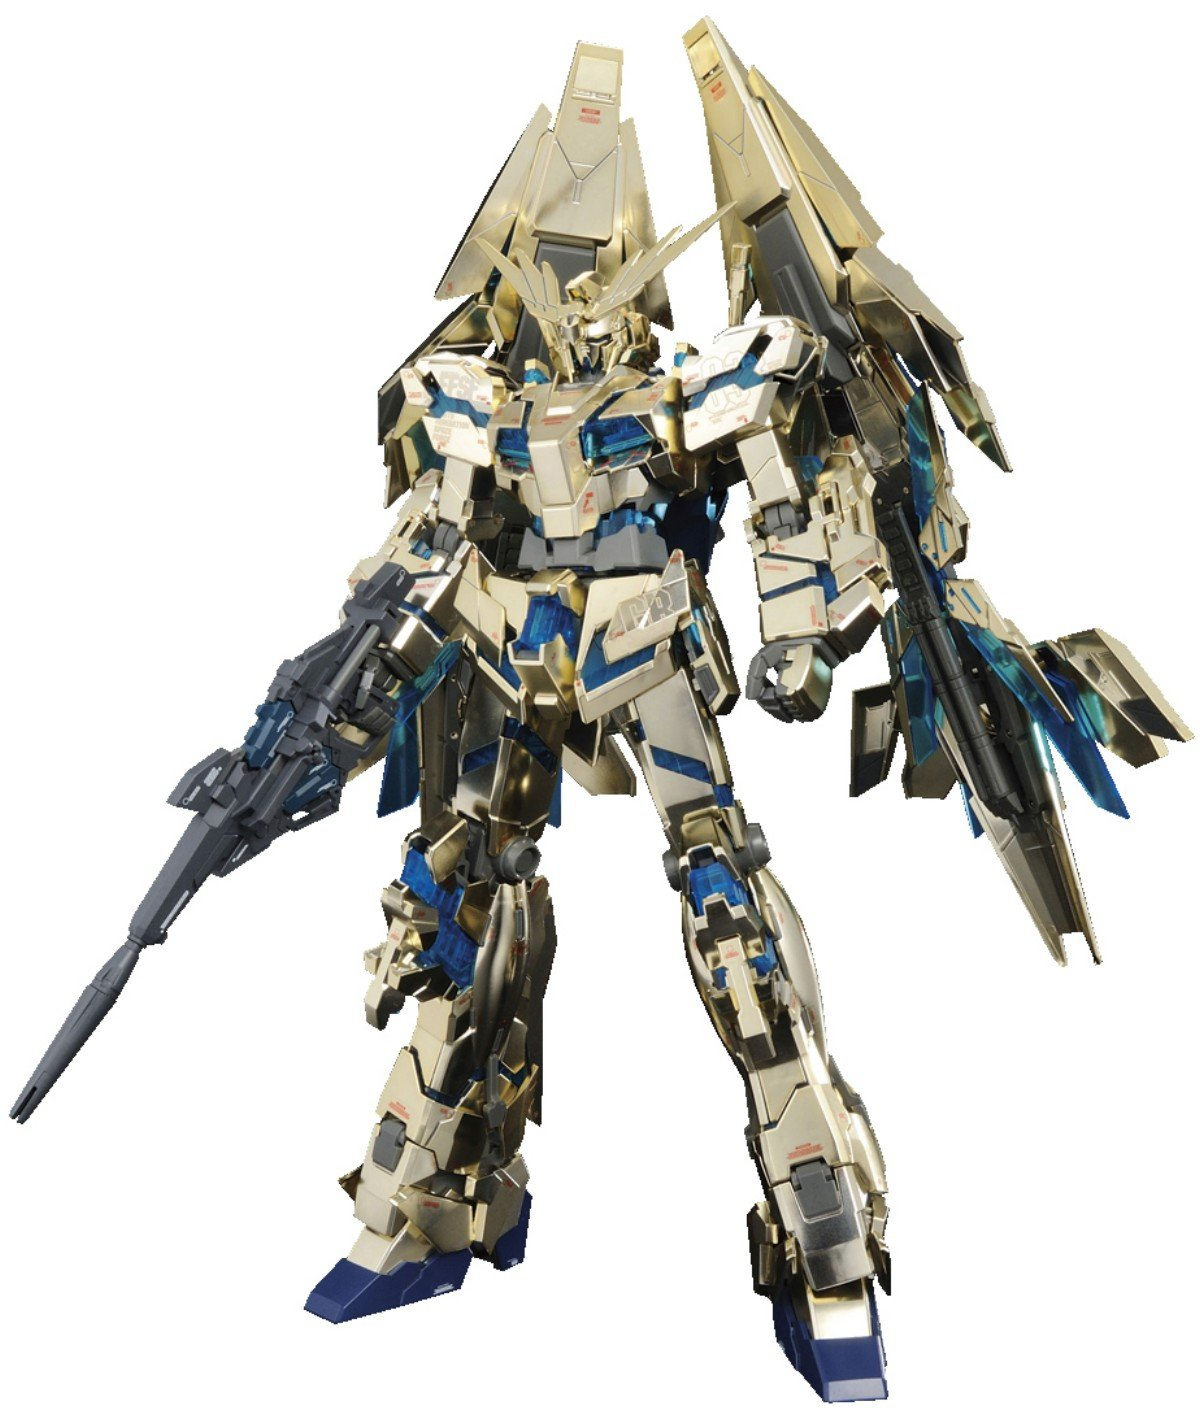 Bandai Hobby MG Unicorn Gundam 03 Phenex Model Kit (1/100 Scale)